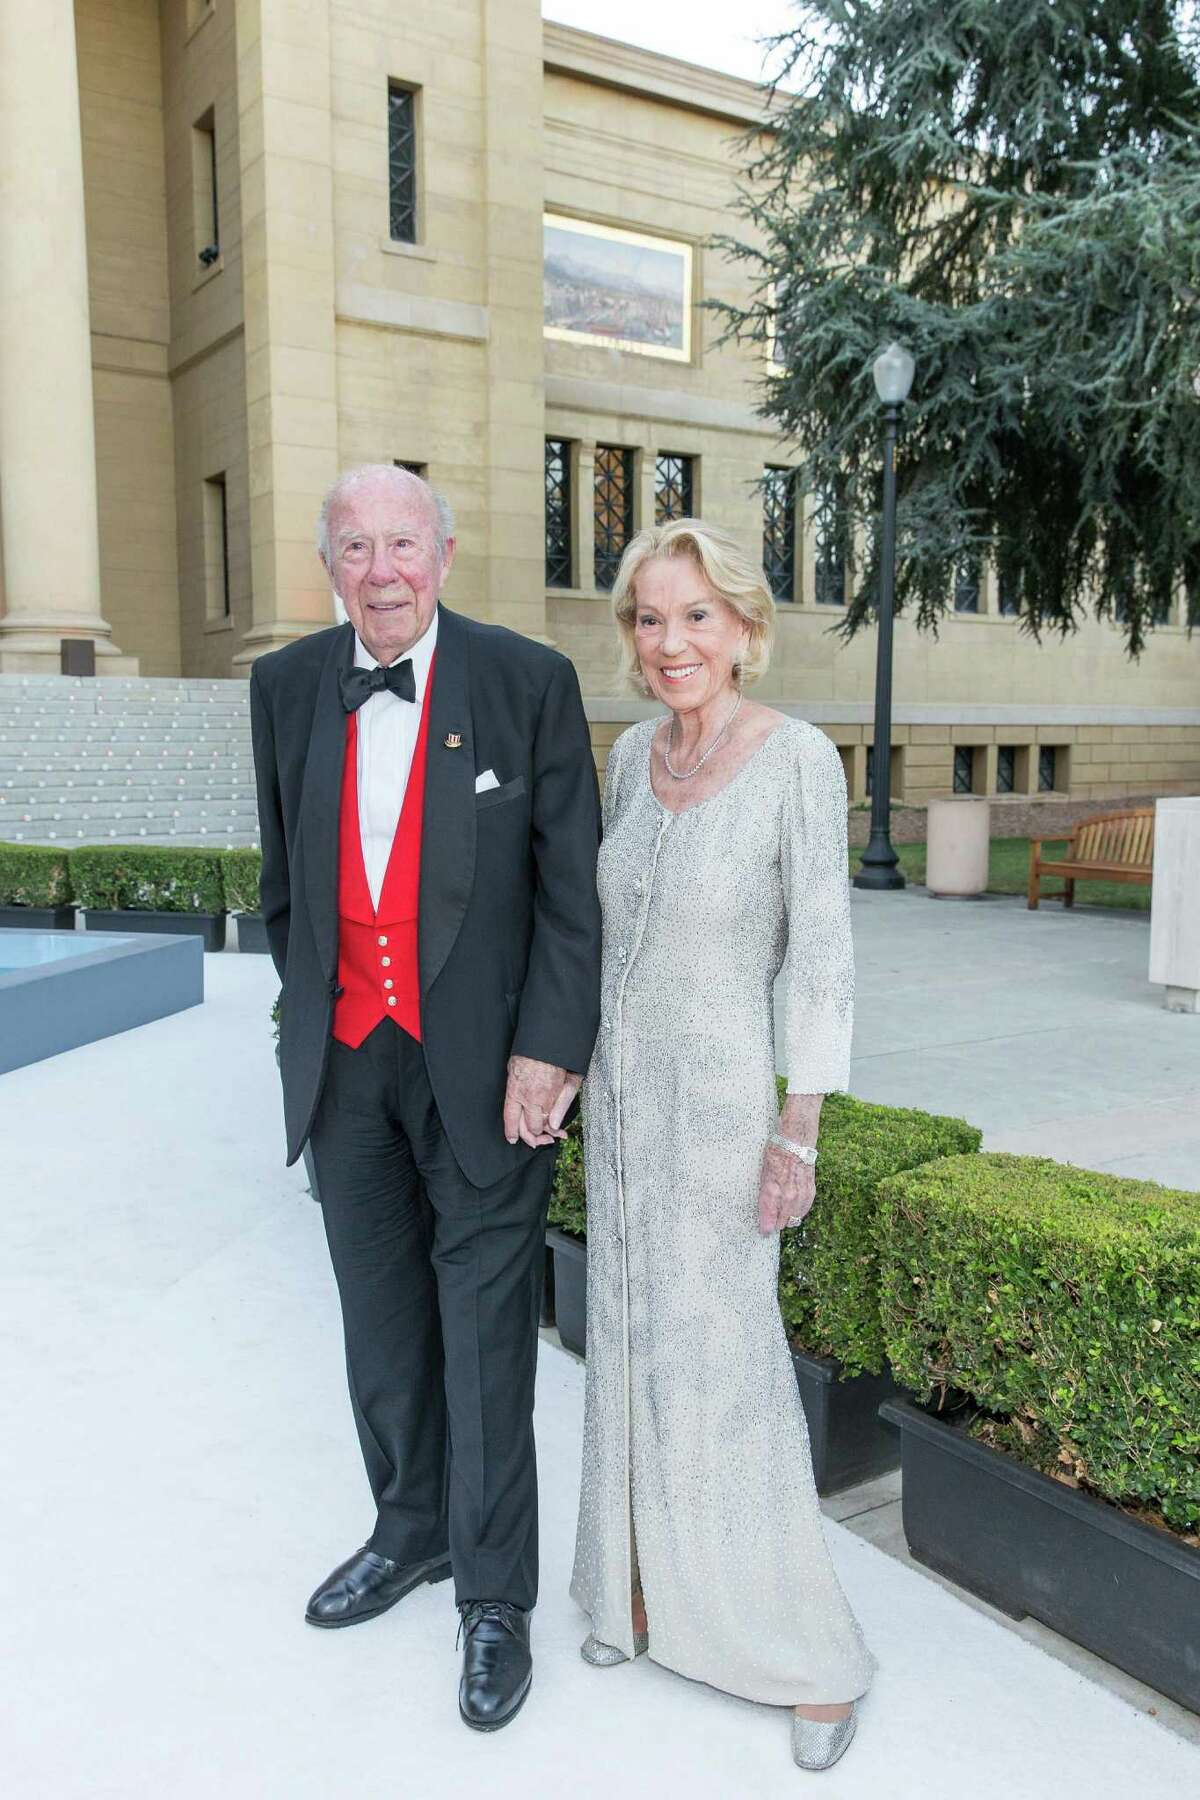 Former Secretary of State George Shultz, a Hoover Institution fellow at Stanford, and Charlotte Shultz, San Francisco chief of protocol, at Rodin by Moonlight at the Cantor Arts Center on Sept. 19.